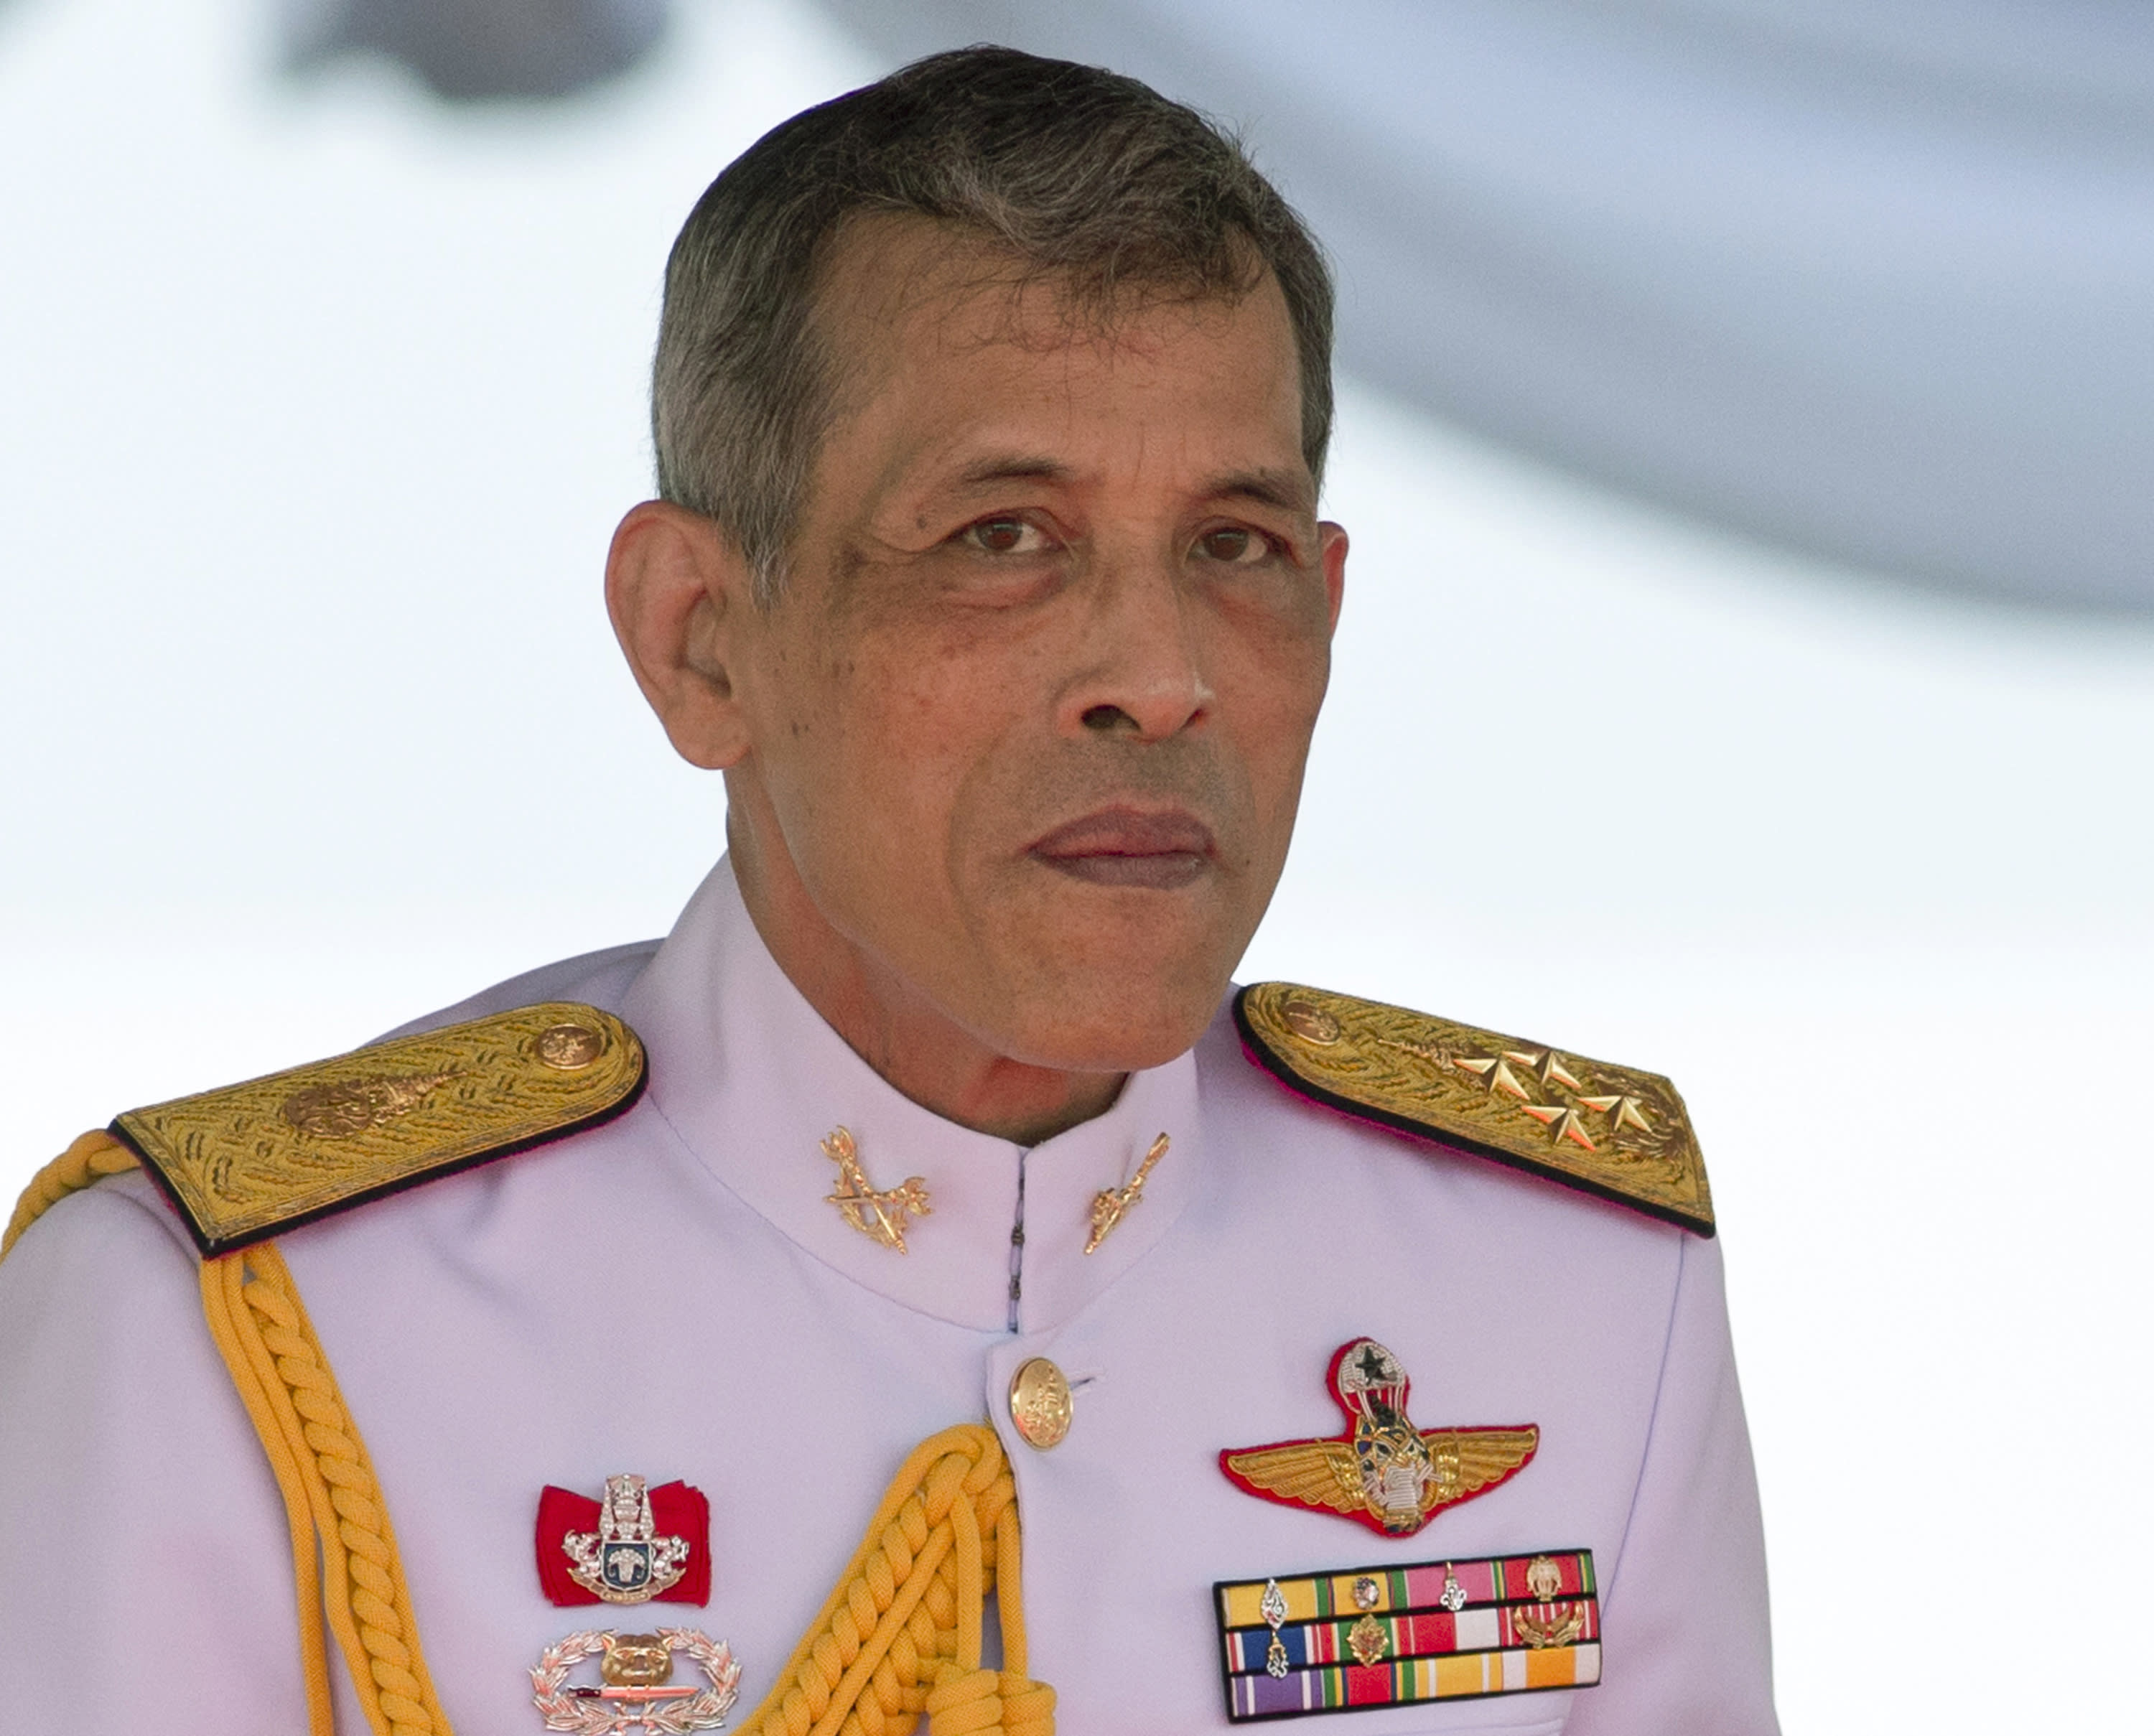 King vajiralongkorn becomes major shareholder in thailands third after the transfer of shares owned by the crown property bureau king vajiralongkorn has personally become the seventh largest shareholder in siam malvernweather Images